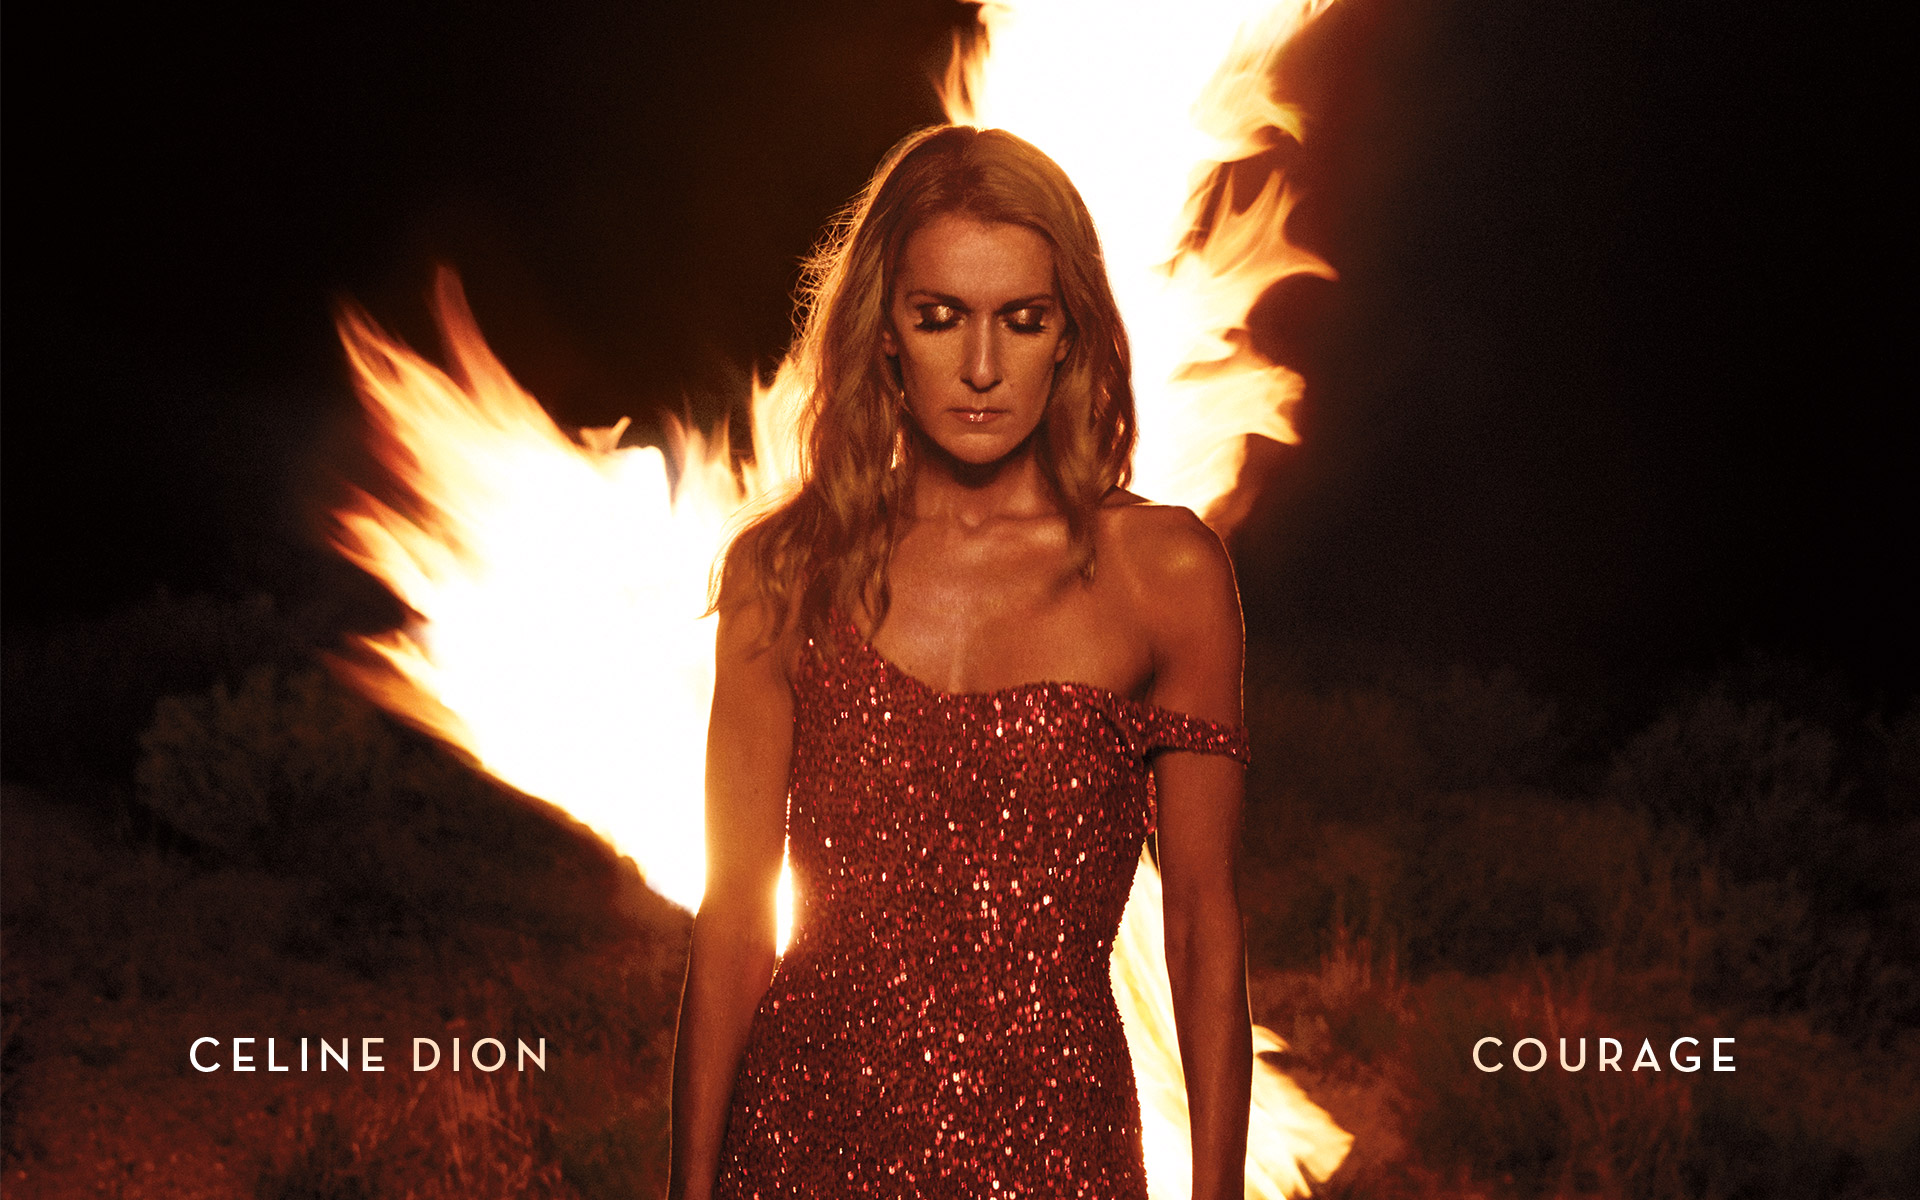 Celine Dion | Courage